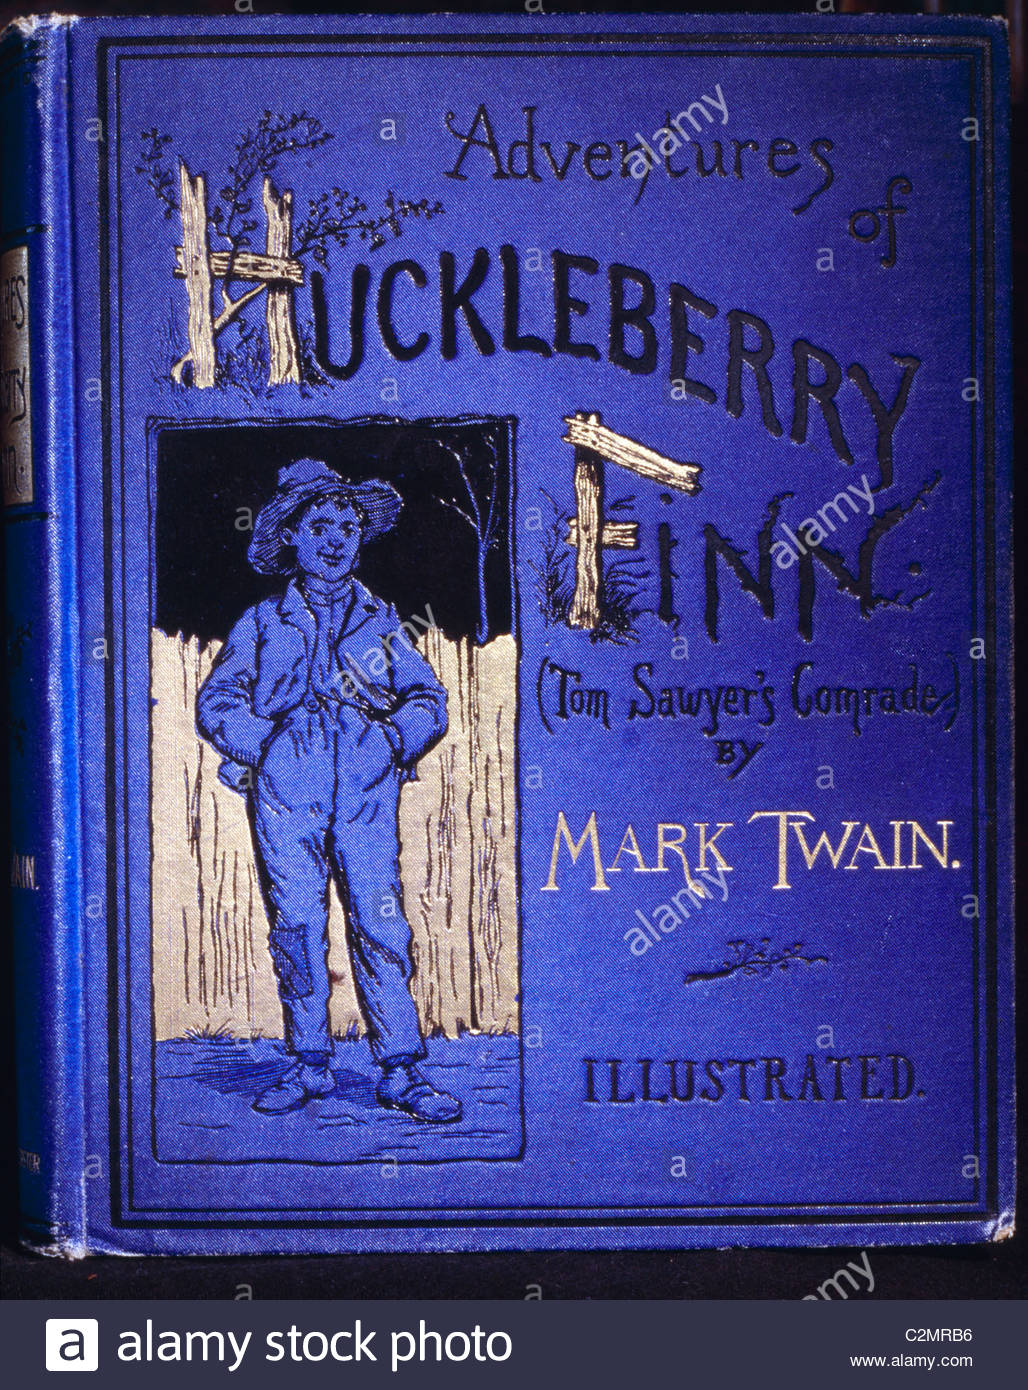 adventures huck finn book report Huckleberry finn book report  topics: adventures of novel the adventures of huckleberry finn was written by mark twain and published on december 10, 1884.